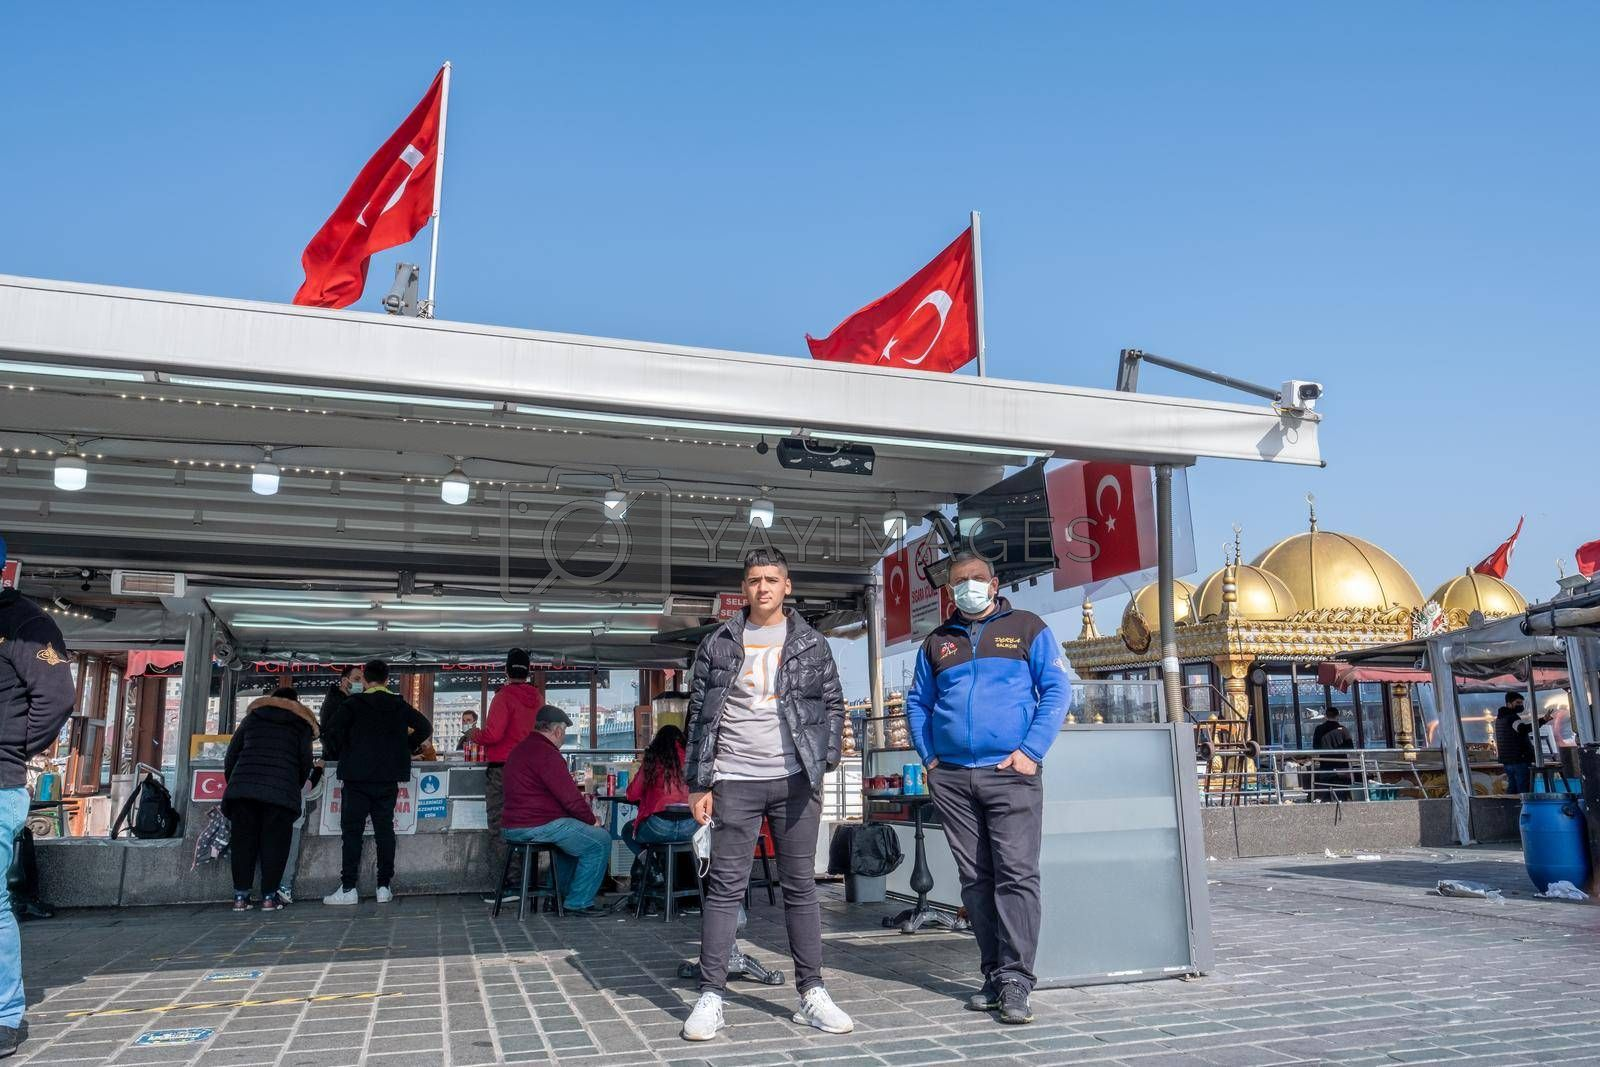 father and son fishermen stand in front of their boat restaurant in Turkey